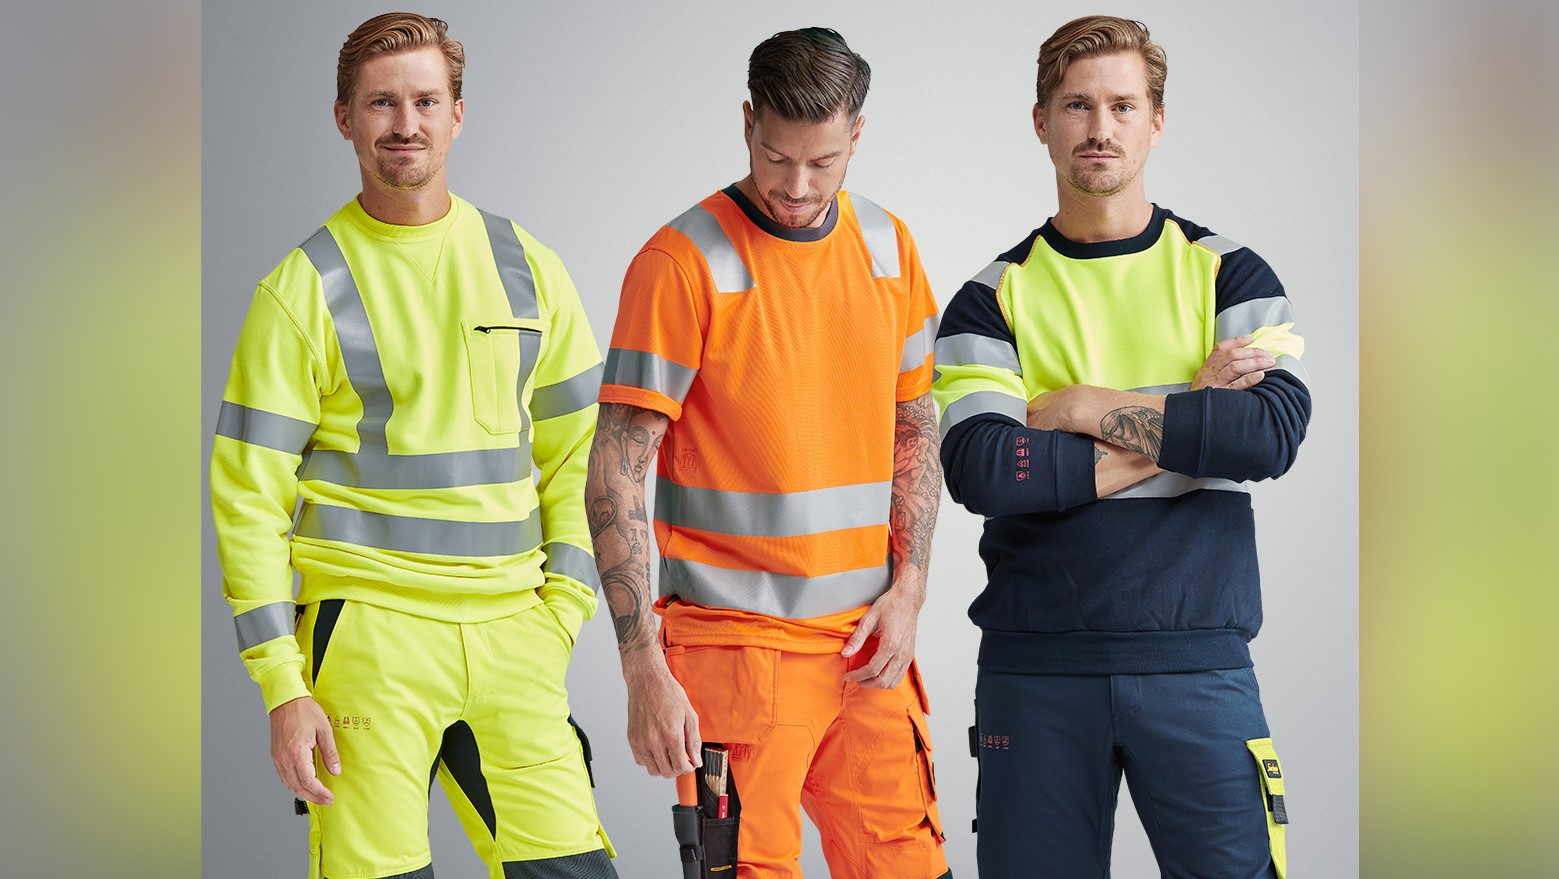 PCIAW | PCIAW News | Snickers Workwear launch new ProtecWork Protective Clothing